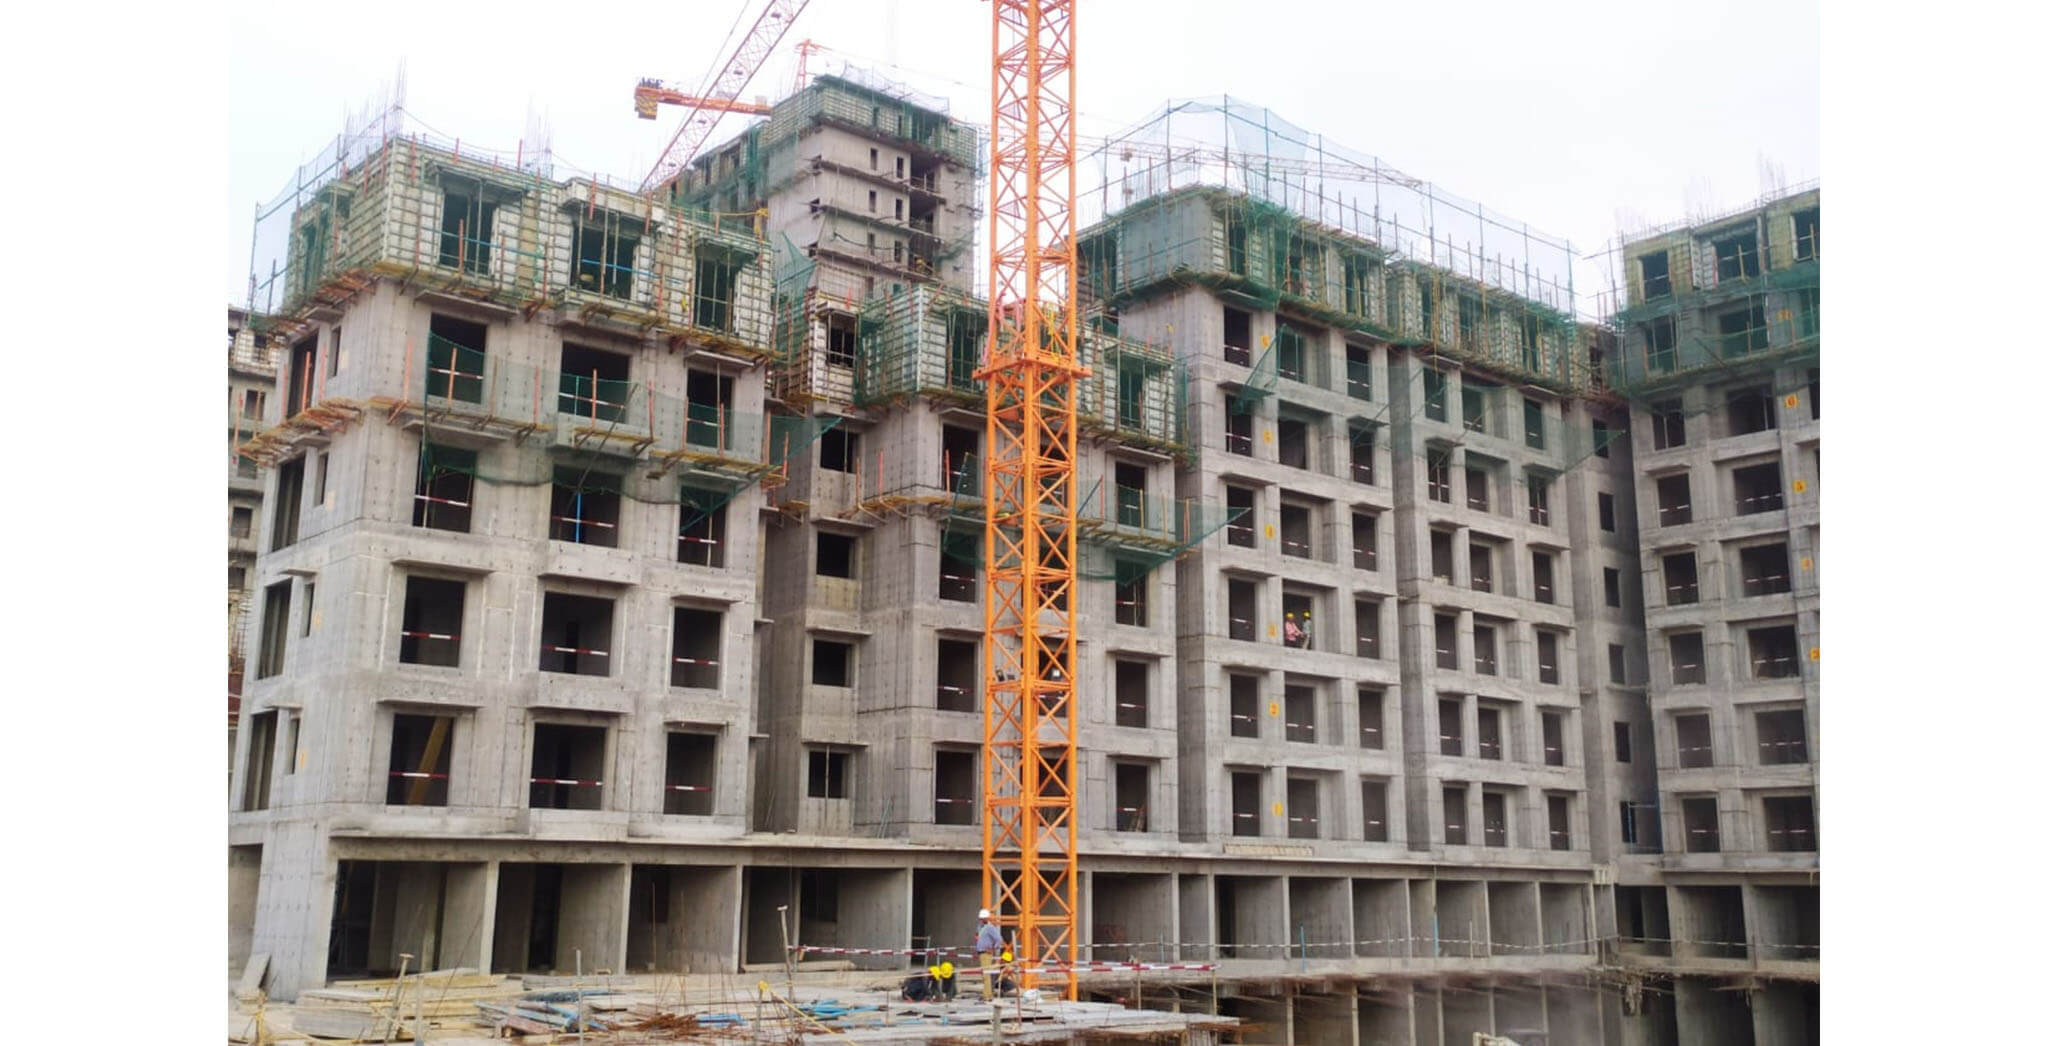 Apr 2021 - Helio: Wing A—on commencement of fifth floor slab